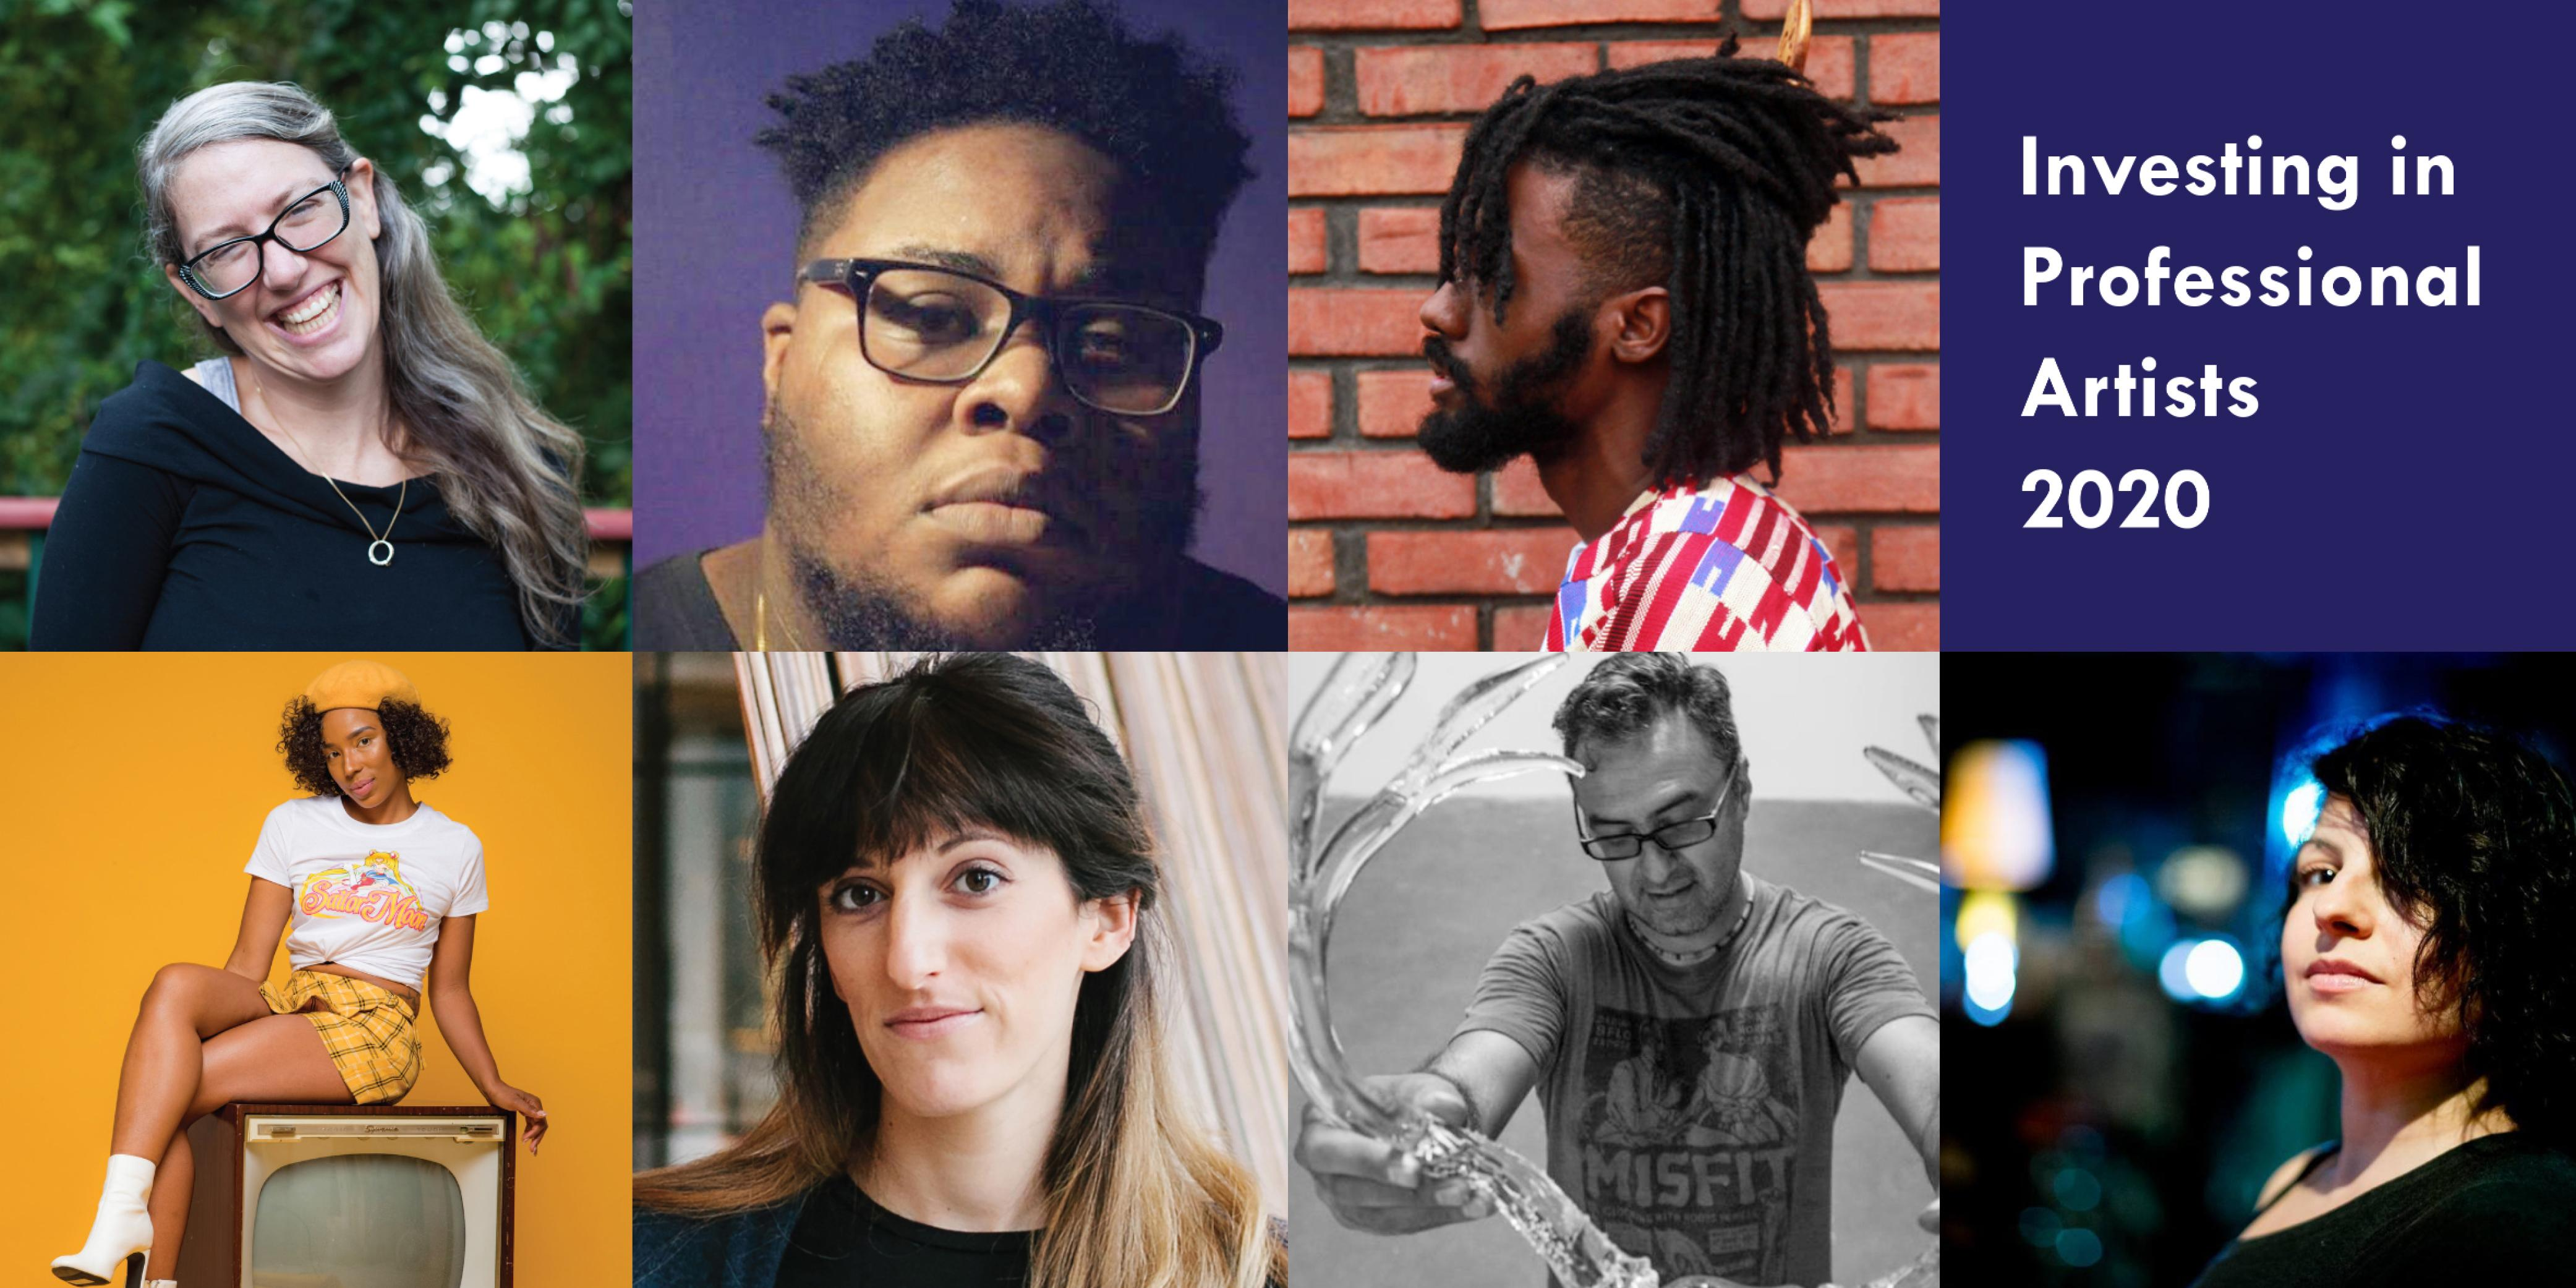 Images courtesy of the artists unless otherwise noted. Top, l -r: Lindsey Scherloum, Jari Bradley, Darnell Chambers; bottom, l -r: Mariah Torres (image by Chris Fox-Kelly of CFK Media), Rachel Mica Weiss (image by Jenifer Trahan), Jaime Guerrero (image by Raphael Cardenas), Pearlann Porter: (image by Aaron Jackendoff).